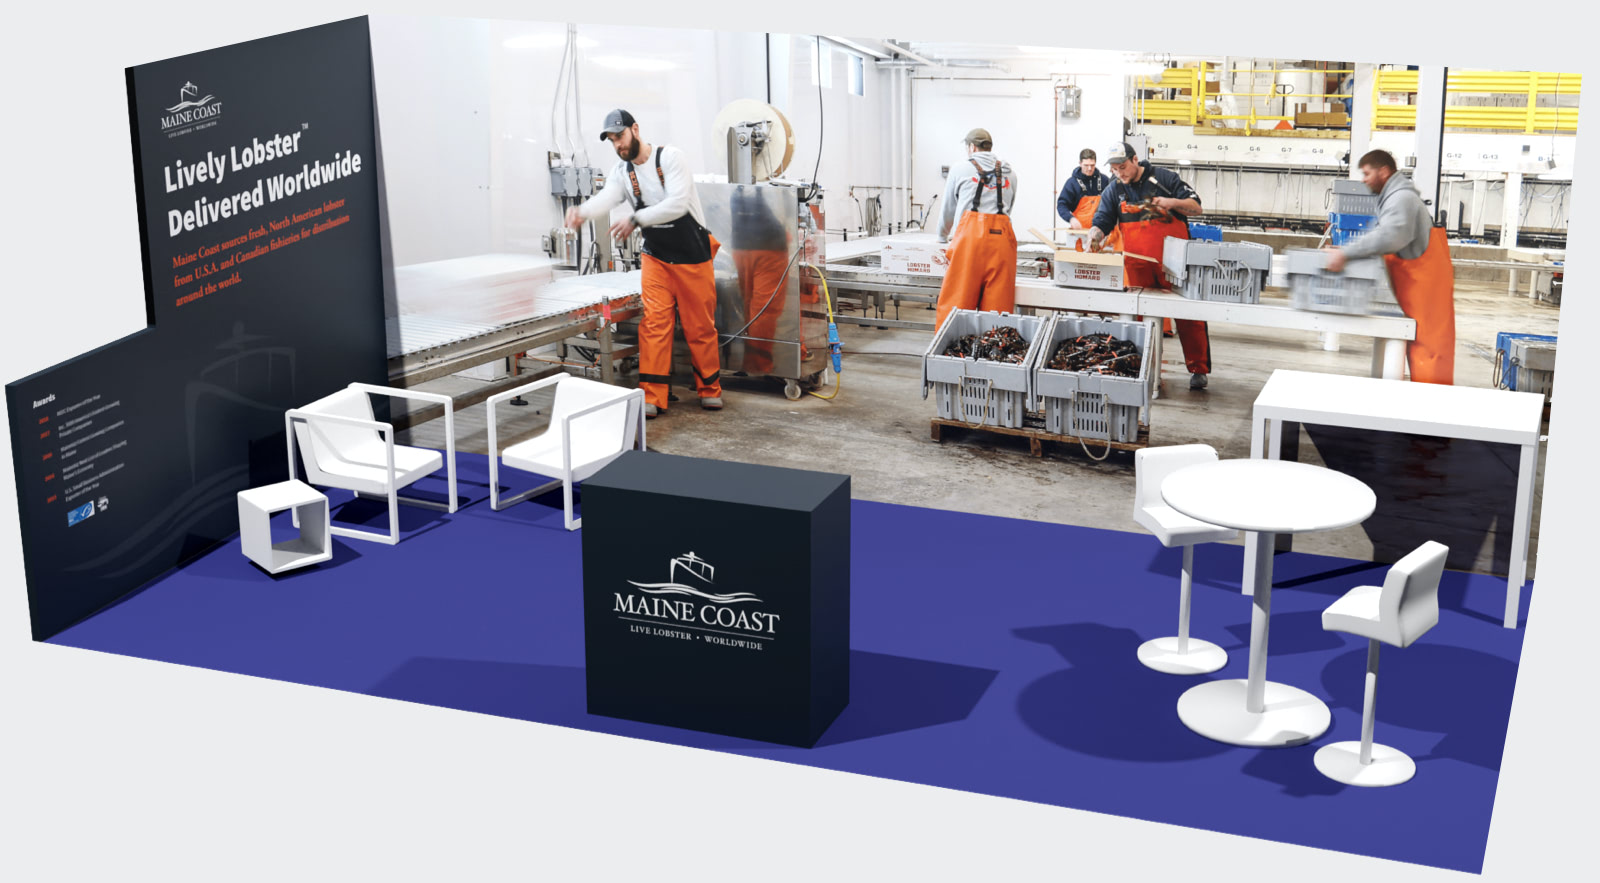 Digital 3D model of the Maine Coast trade show booth design with a vibrant full-size photograph of their packing facility on the back panel, Maine Coast's mission and awards on the side panel, and a branded podium and modern furniture arranged within the booth.